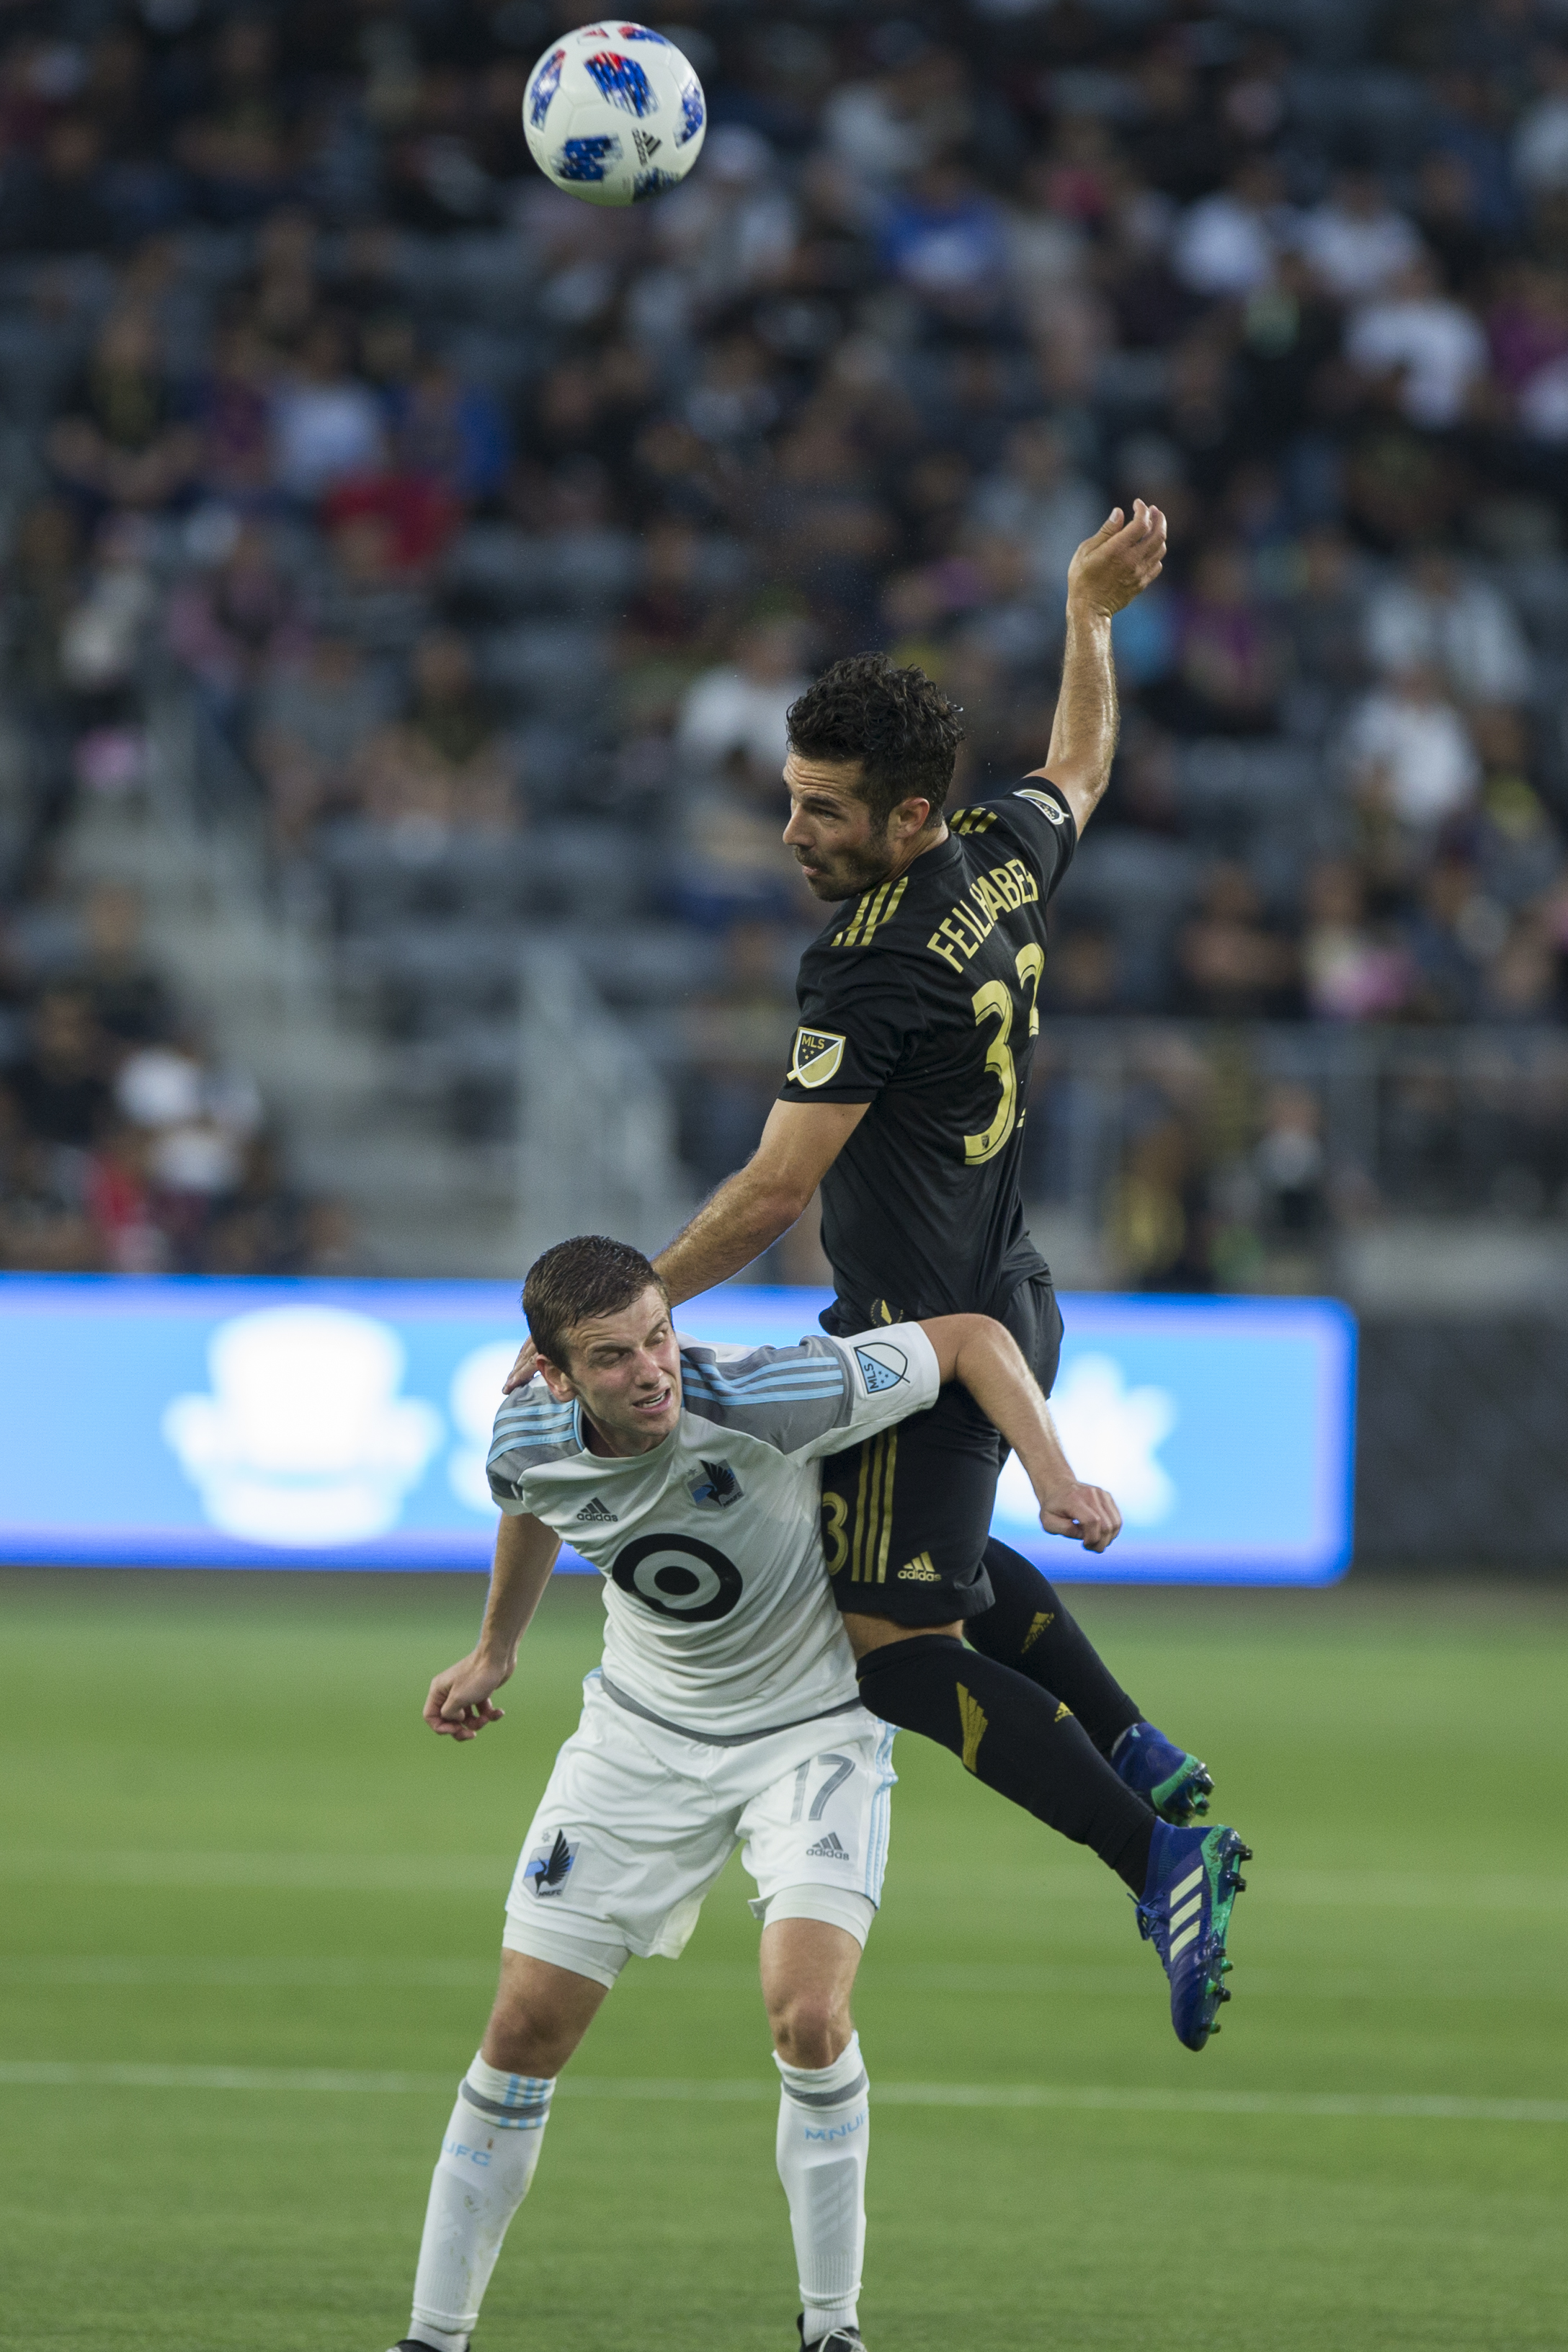 Minnesota United Football Club (MUFC) midfielder Collin Martin (17, left) headers the ball away from Los Angeles Football Club (LAFC) midfielder Benny Feilhaber (33, right) during their match at Banc of California Stadium on May 9, 2018 where the LAFC won 2-0. (Zane Meyer-Thornton/Corsair Photo)